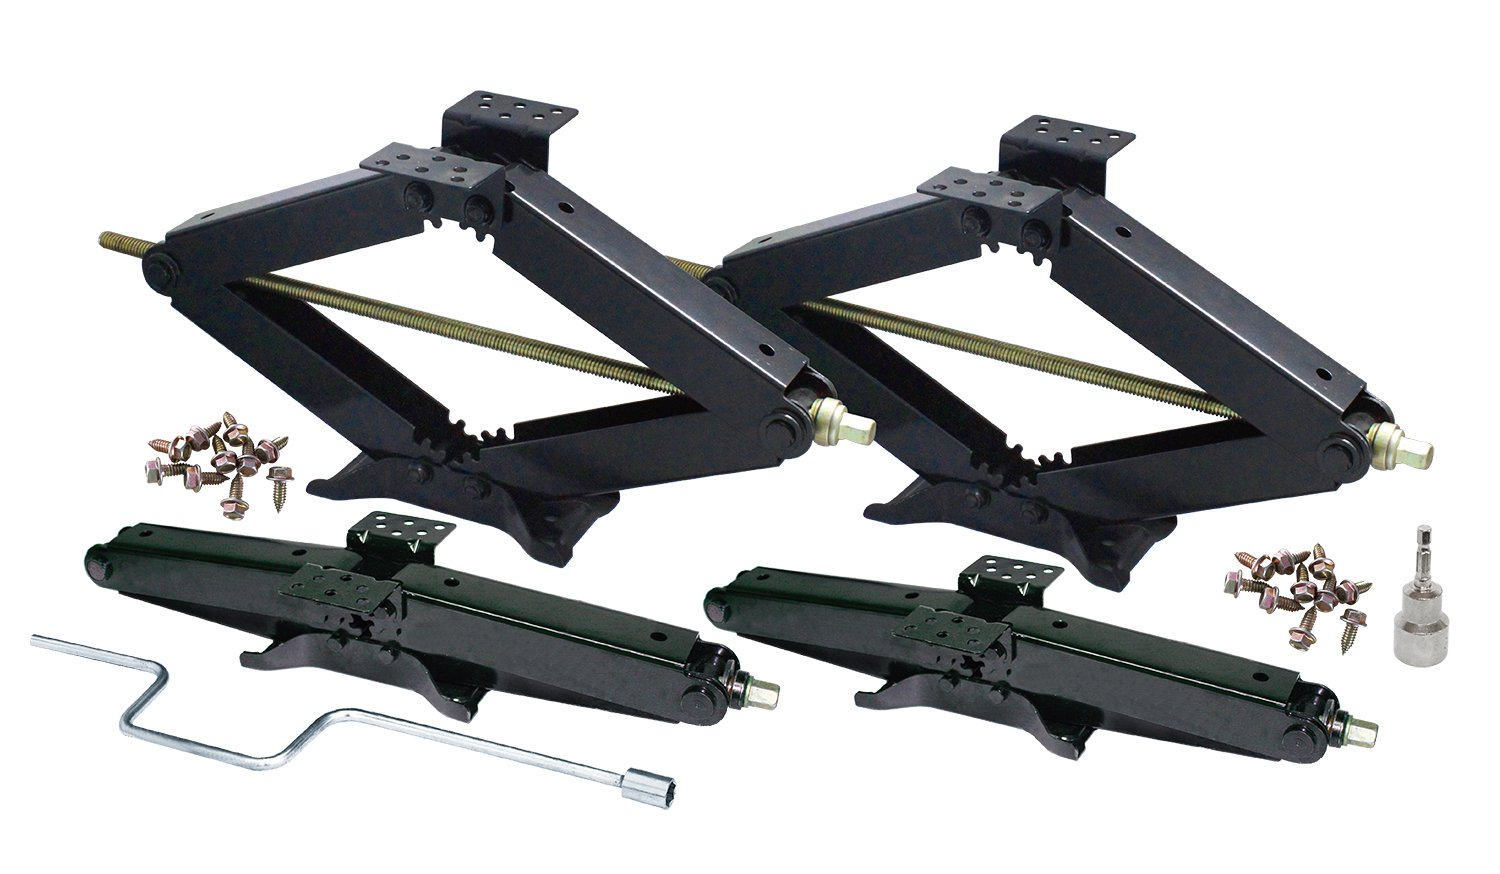 4PK COMBO - 3 3/4 TON RV JACK COMBO W/HANDLE & Socket - 24' LIFT - 7500 LBS Prograde